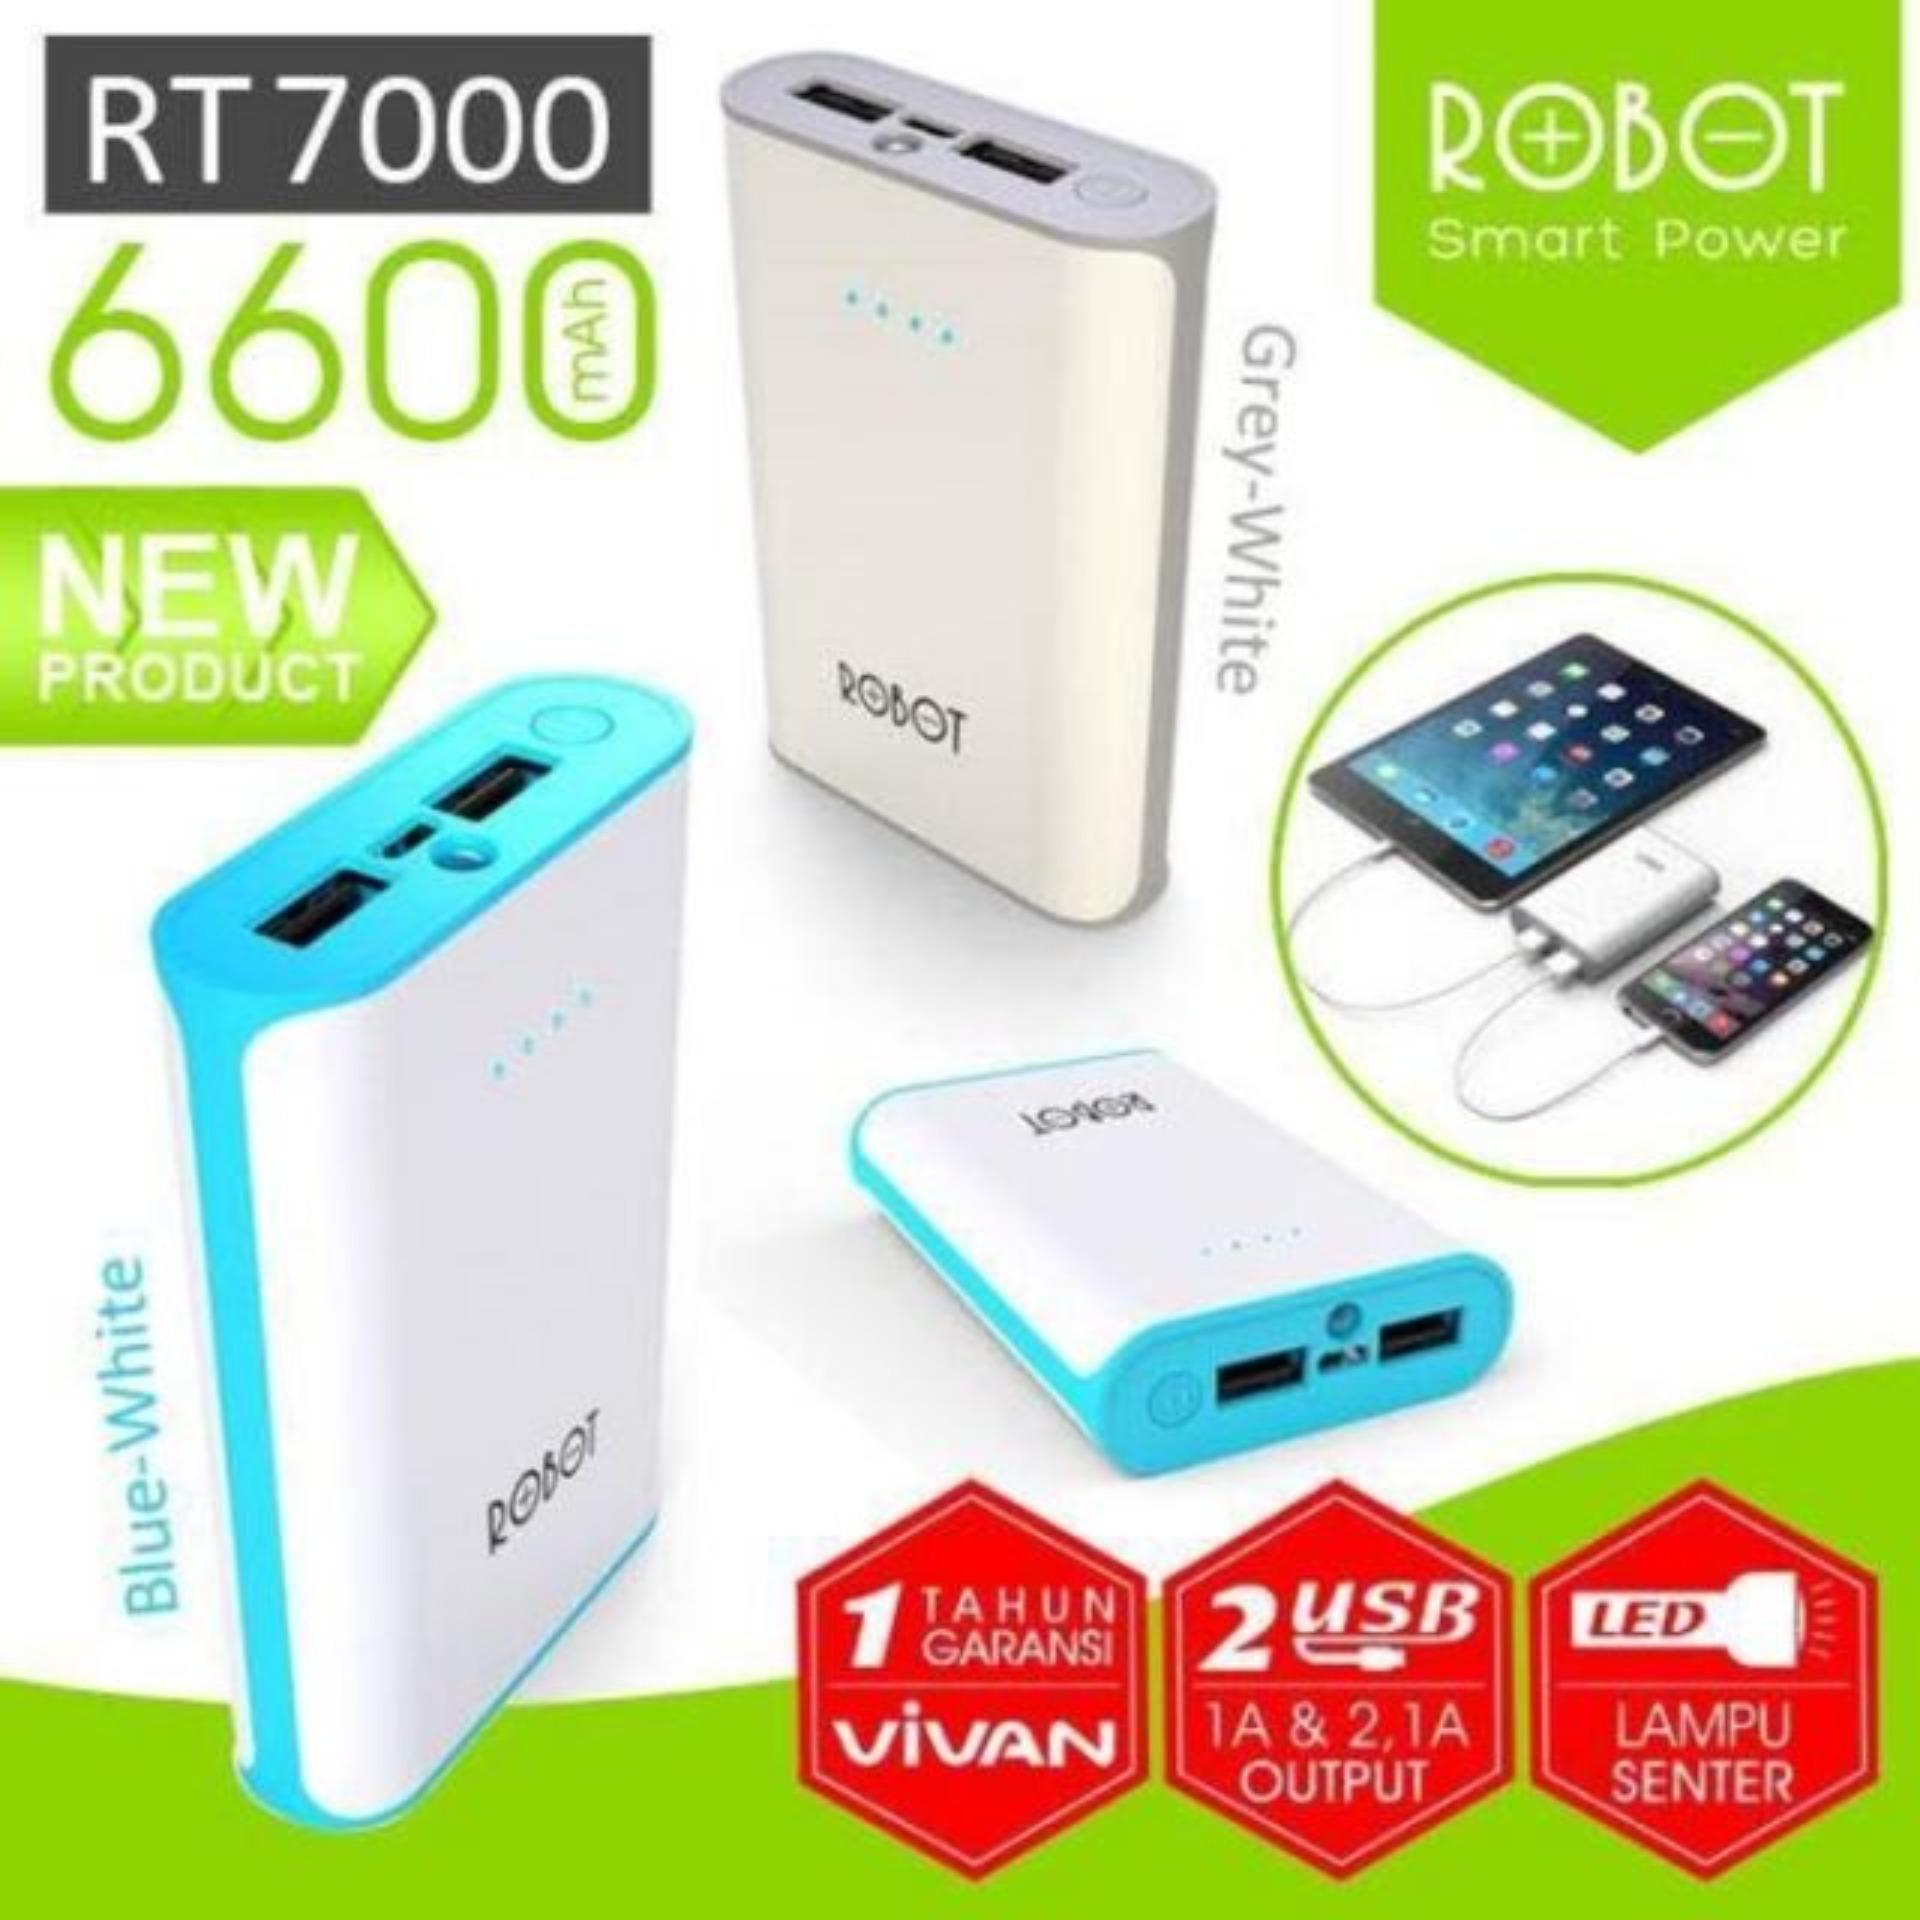 Powerbank Robot Rt7100 6600mah Daftar Harga Terbaru Terlengkap Rt 7100 Power Bank 2 Port Usb Review Of